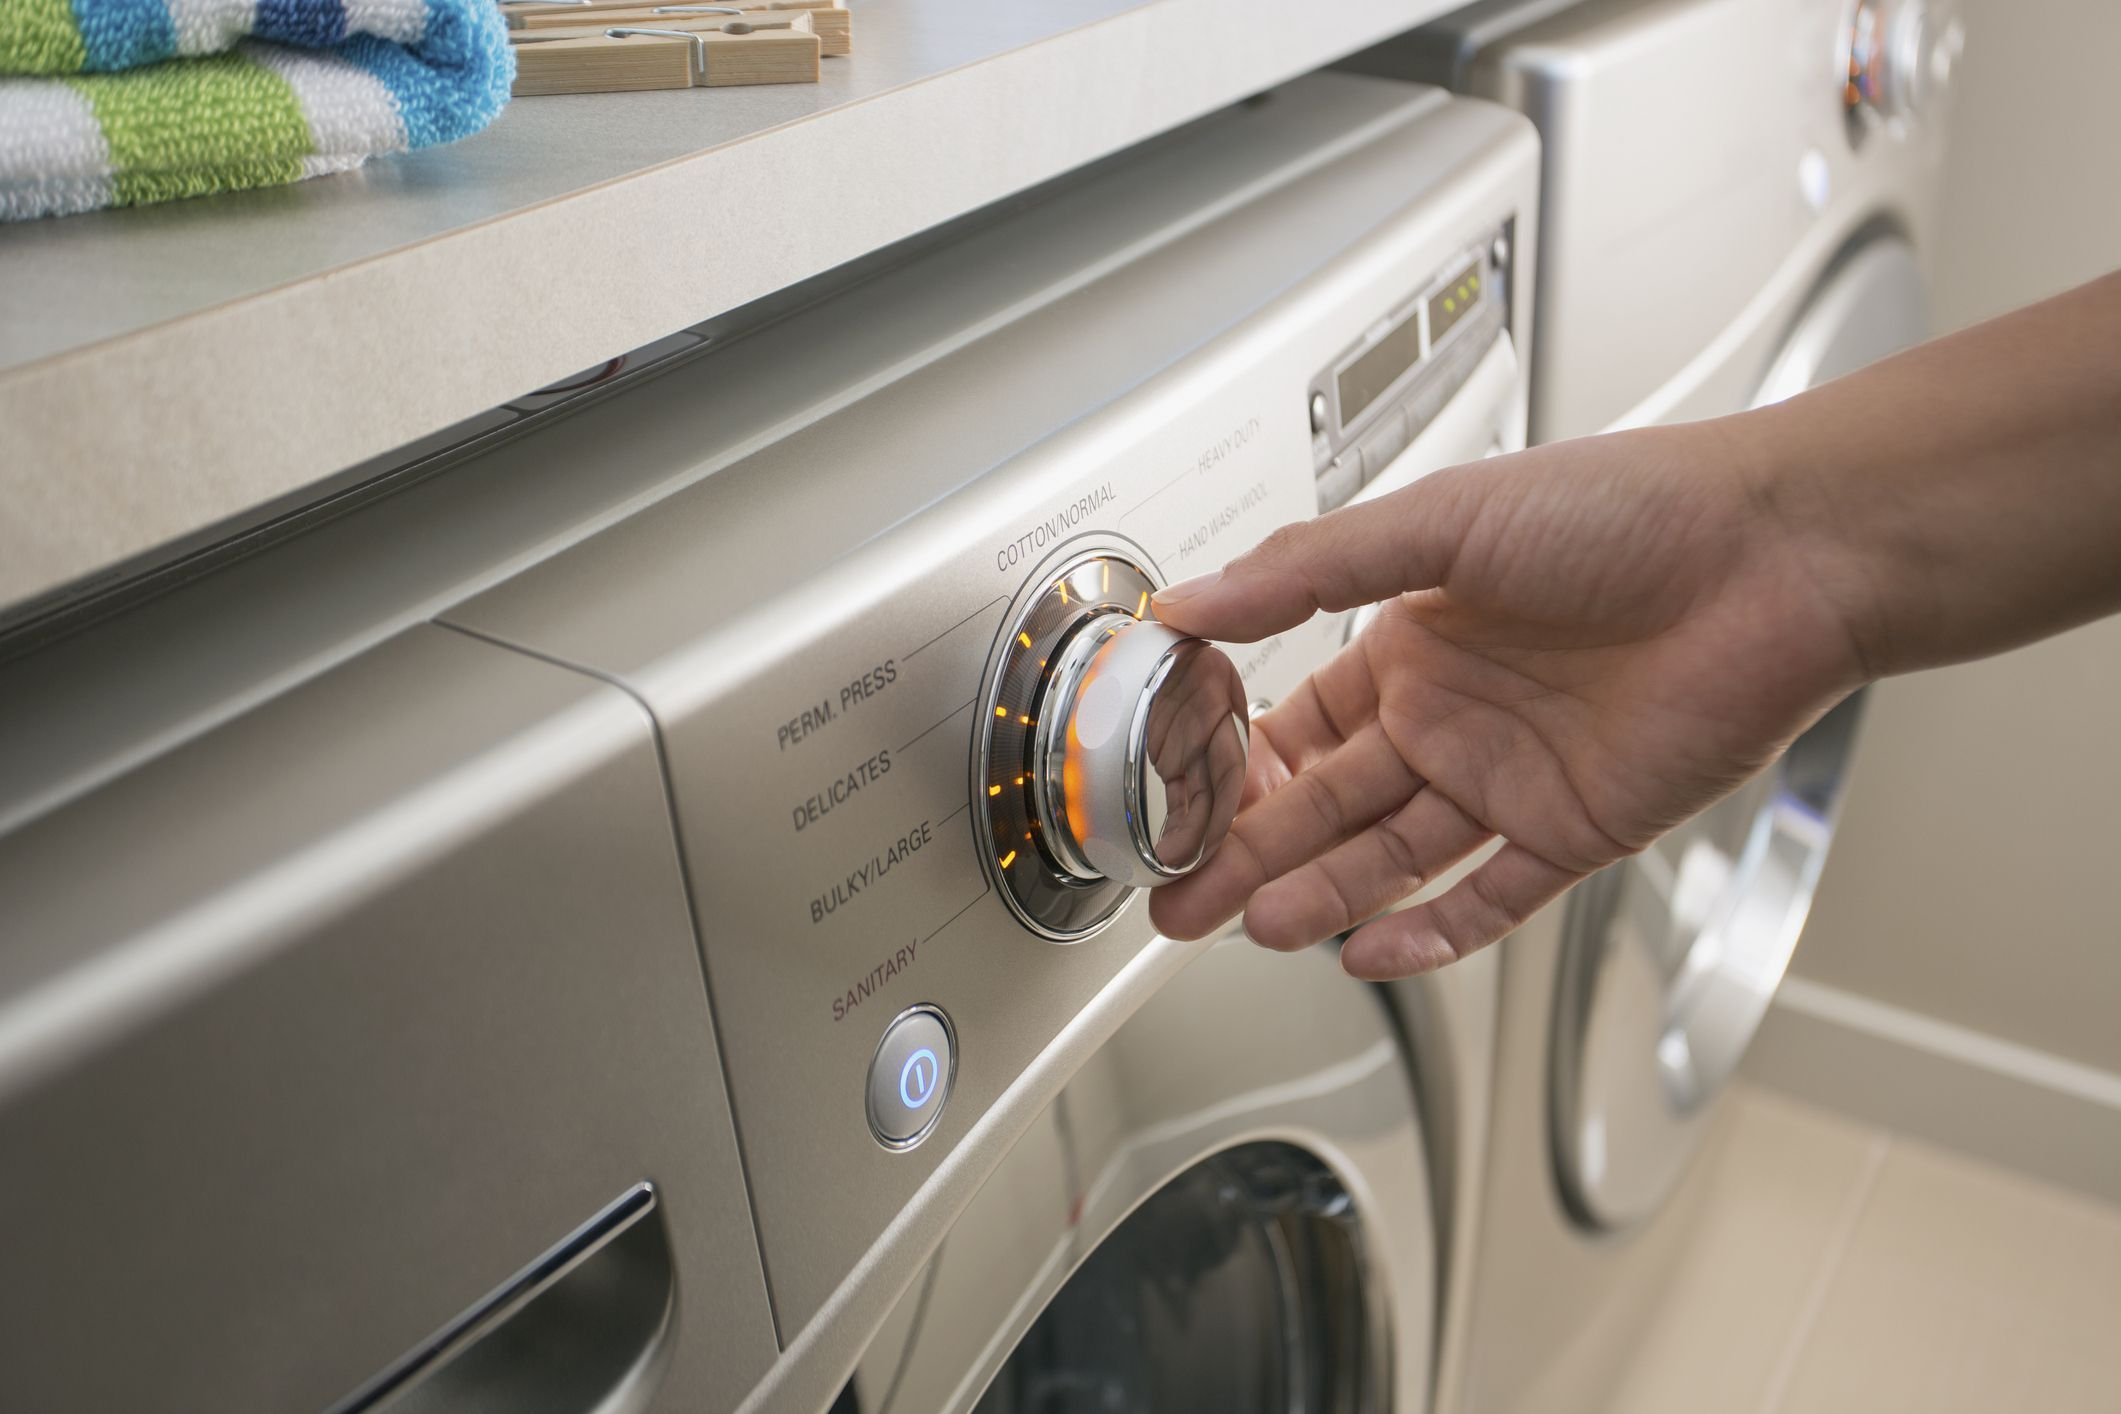 Hot Warm Or Cold Water For Laundry Washing Laundry Steam Washer Washing Machine